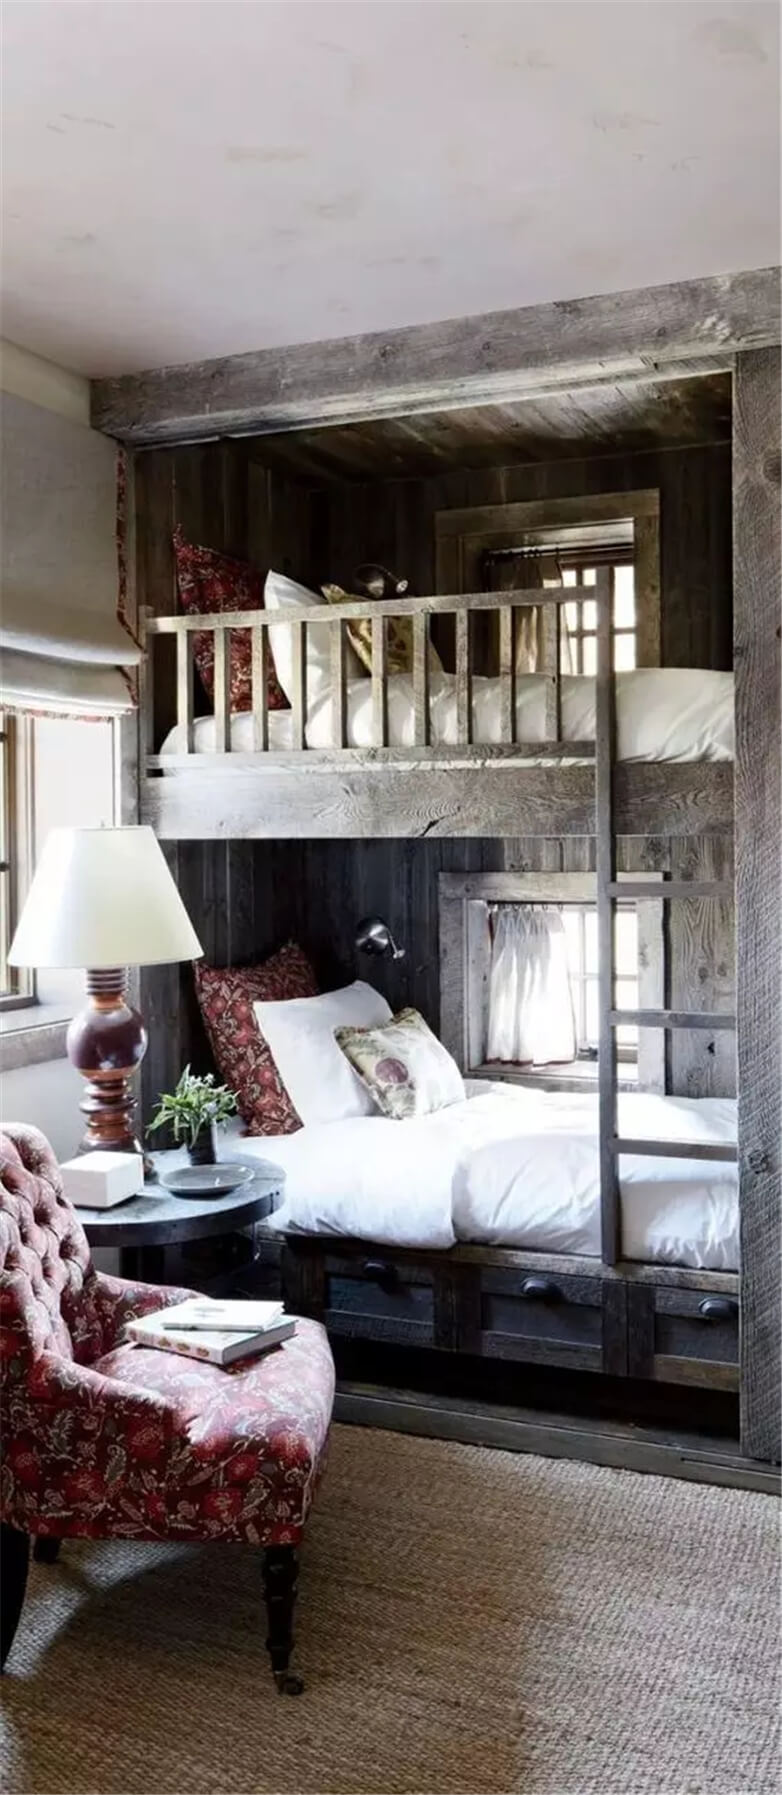 37 Best Small Bedroom Ideas and Designs for 2020 on Ideas For Small Rooms  id=45923